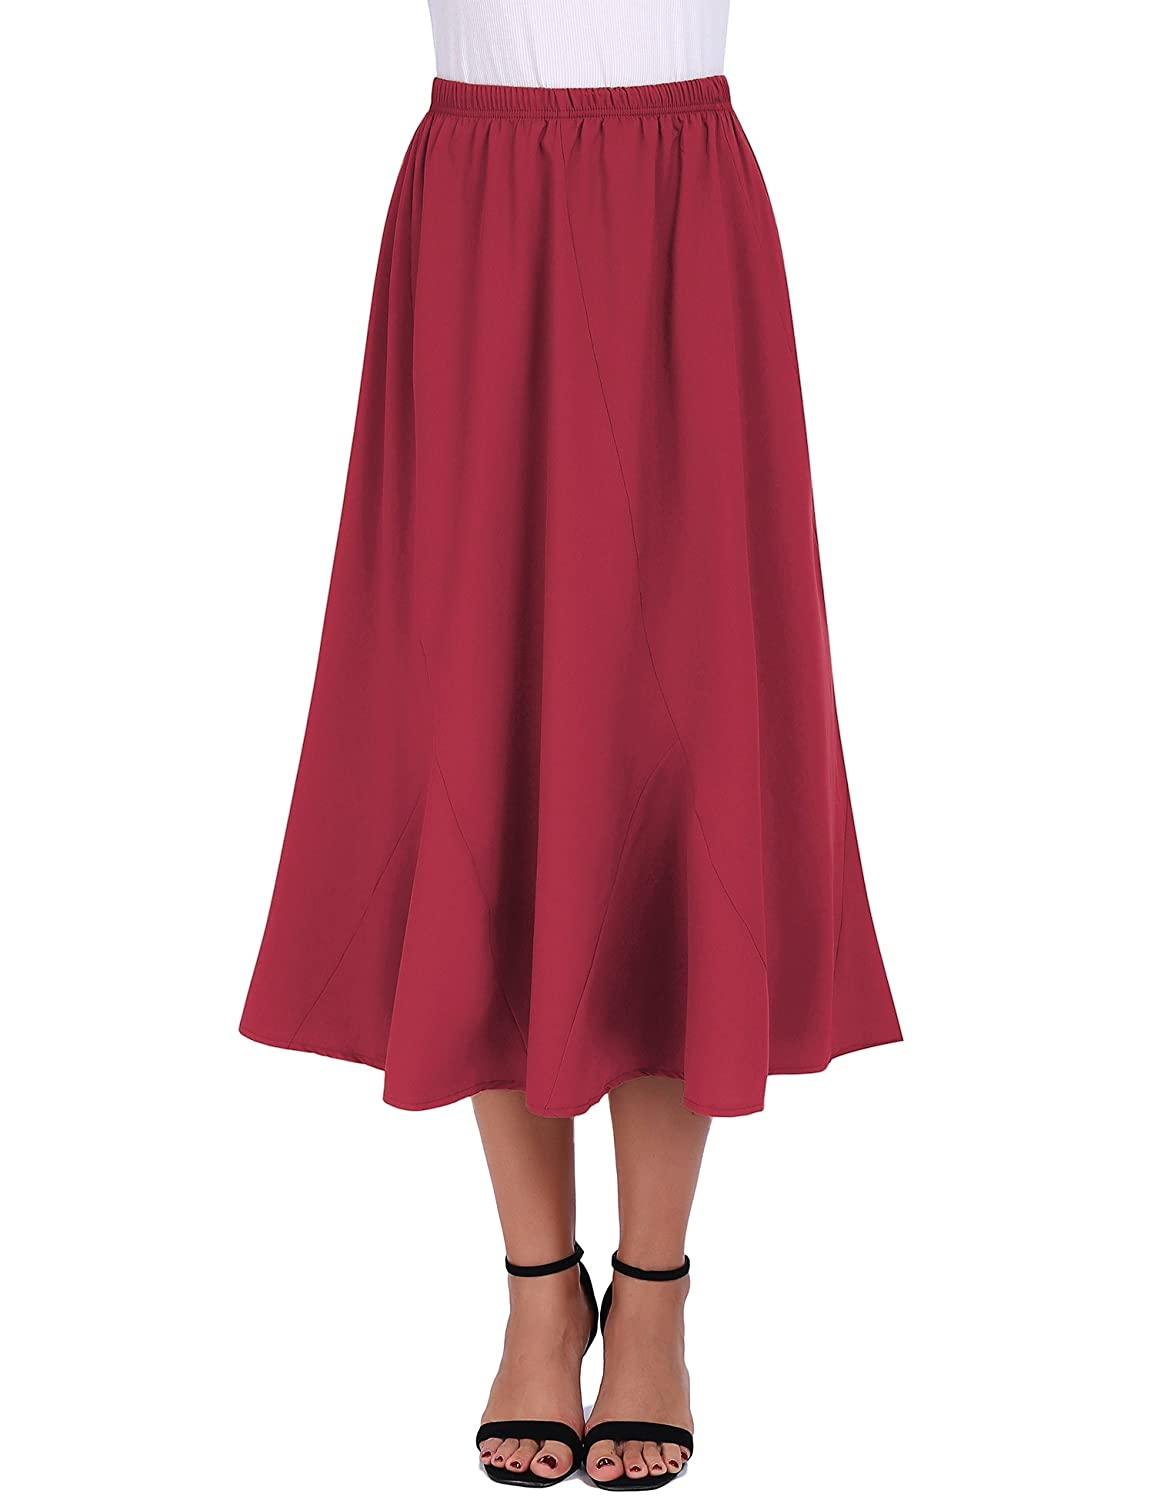 FISOUL Women Vintage Elastic Waist Skirts Casual Blow Knee Length Flared A-Line Pleated Long Skirts